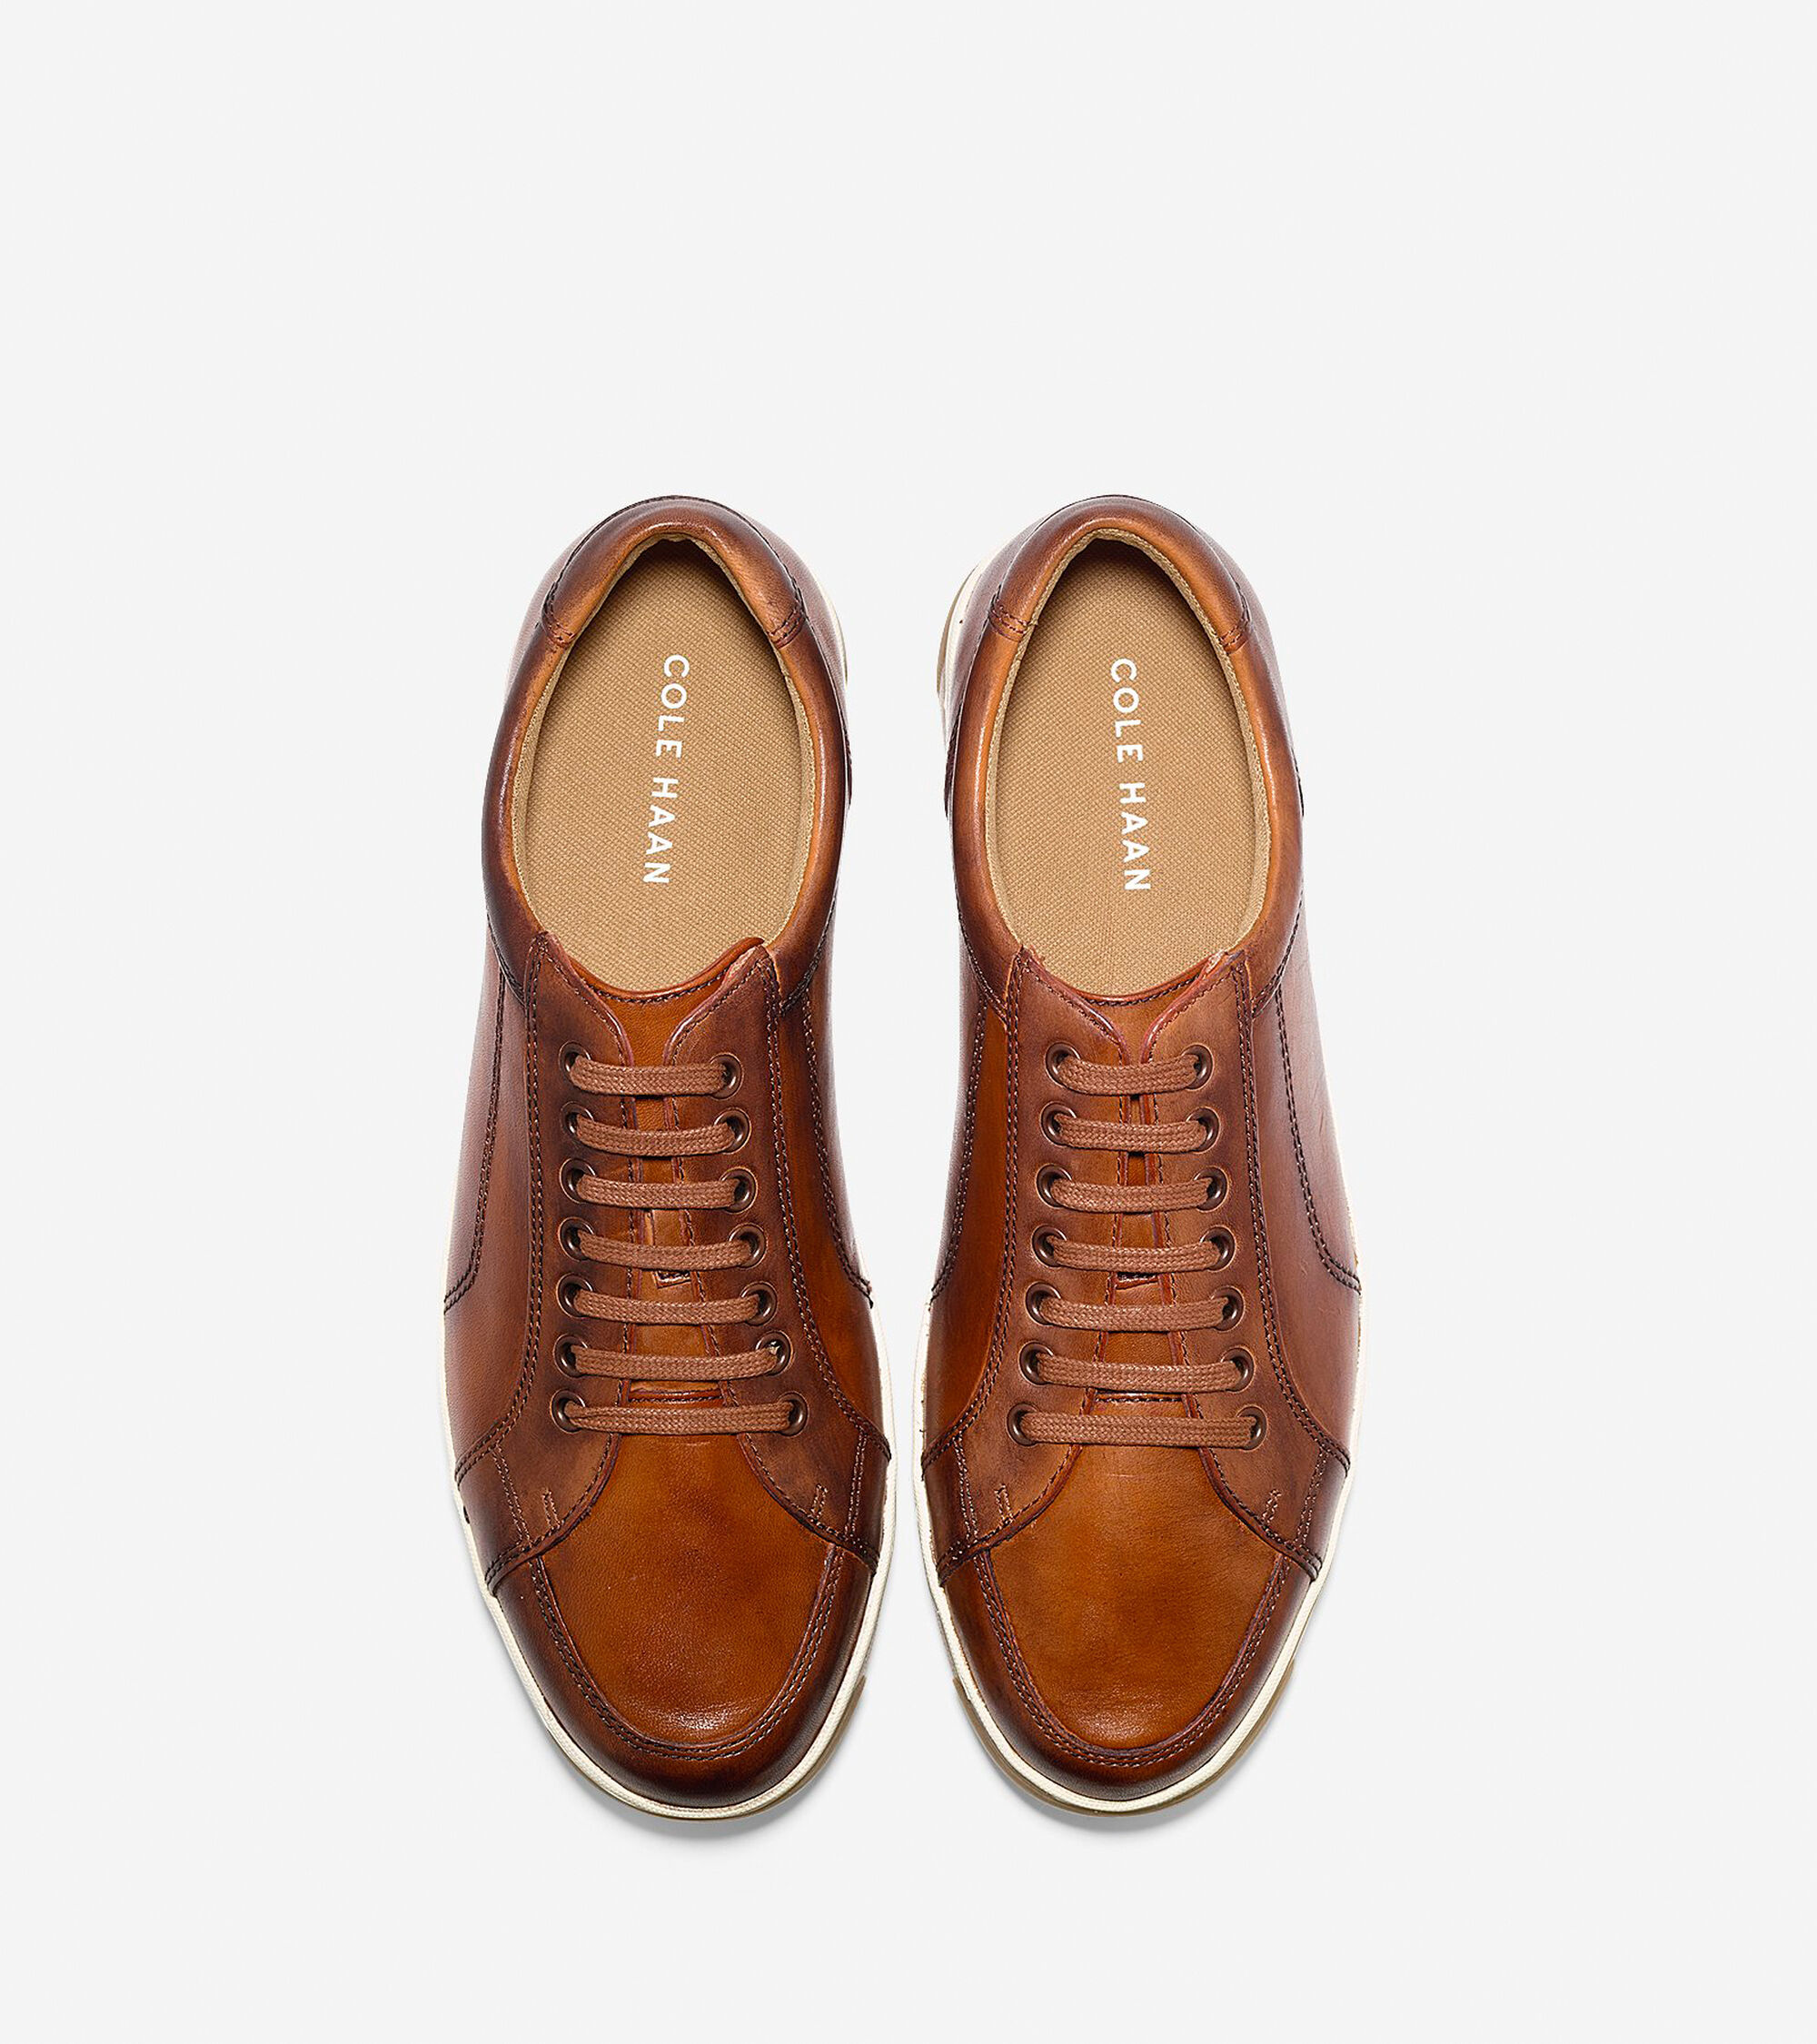 d2b10d76361 Vartan Hand-Stained Sport Oxfords in British Tan